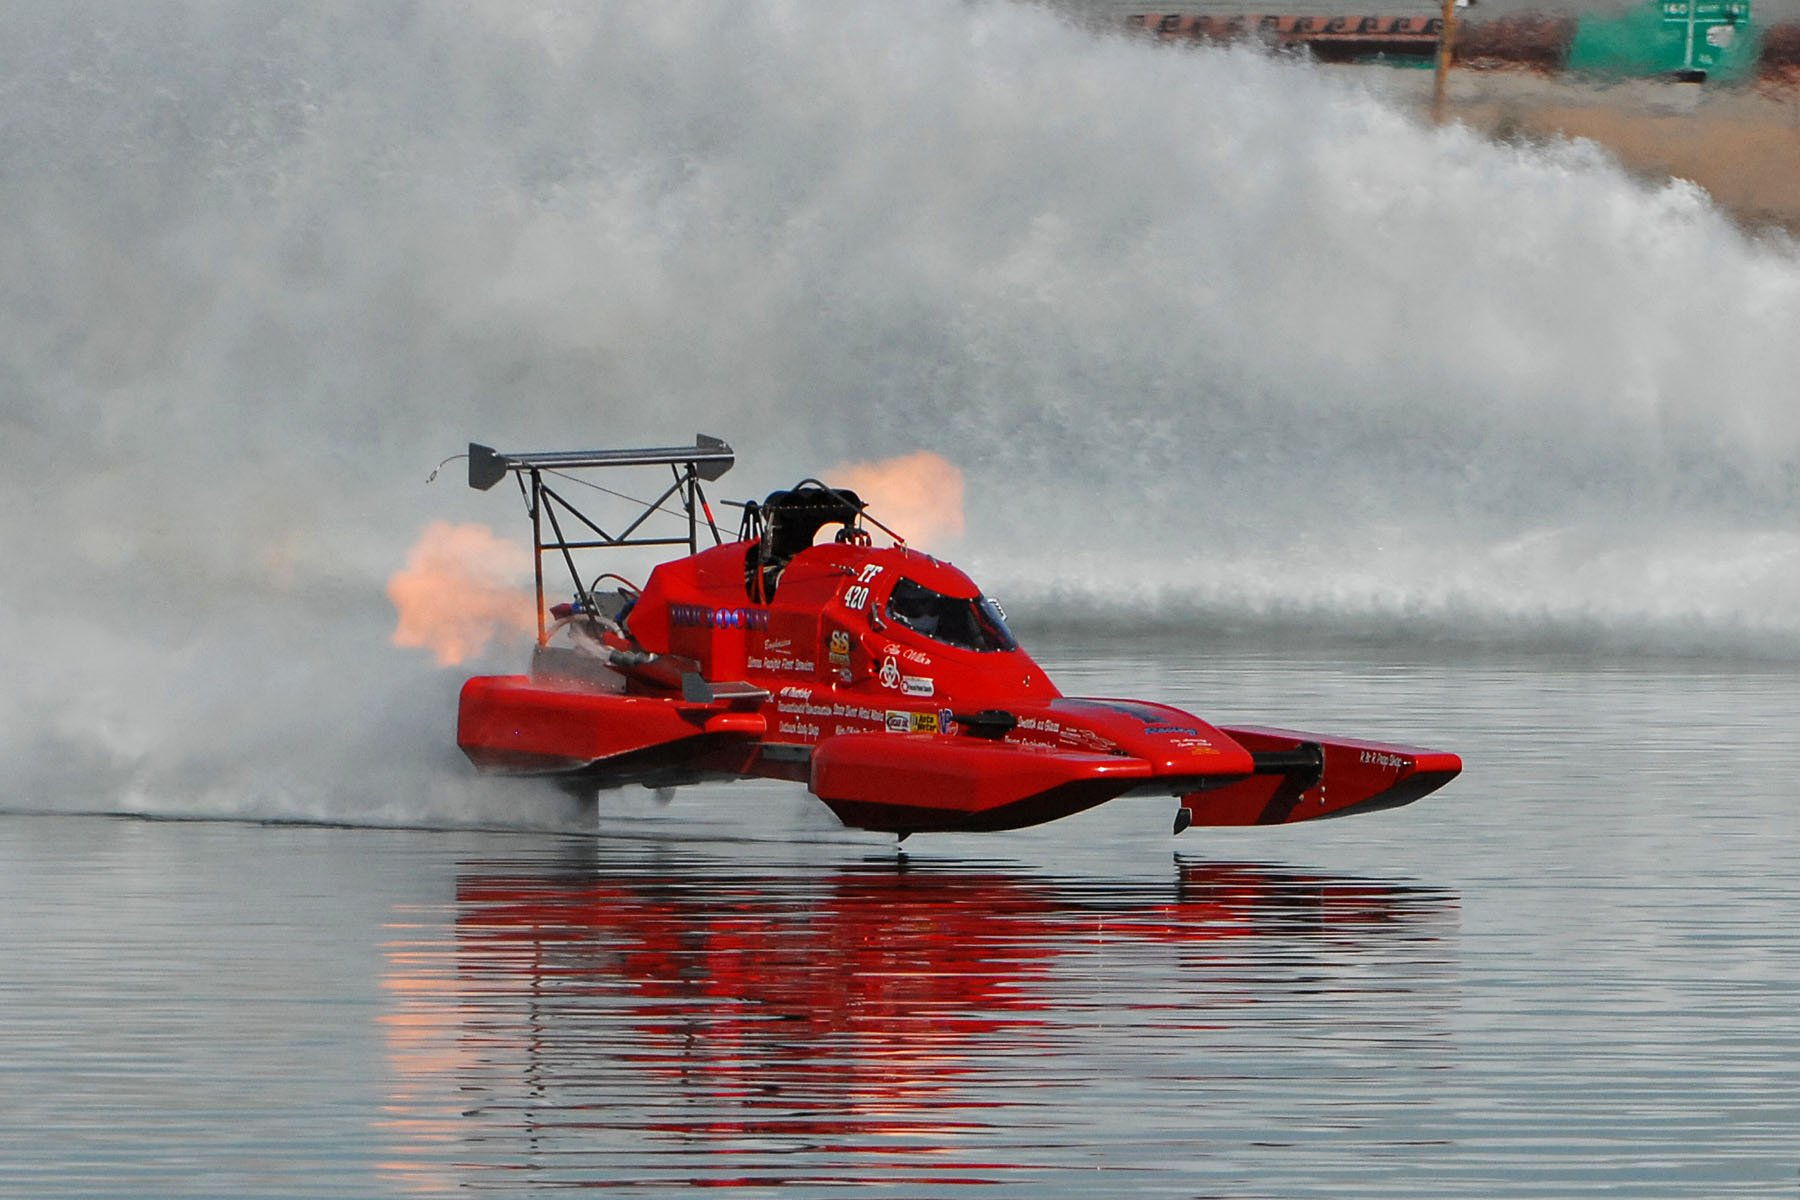 rc race boats for sale with Drag Boat Race Racing Ship Hot Rod Rods Drag Boat Custom on Pro furthermore Polaris Rzr Goes Wild On Man Made Track Full Of Insanely Massive Jumps besides Riva Aquarama Lofted Plans as well Checkers Flag Racing Tribal Boat Graphic Set moreover 2347.